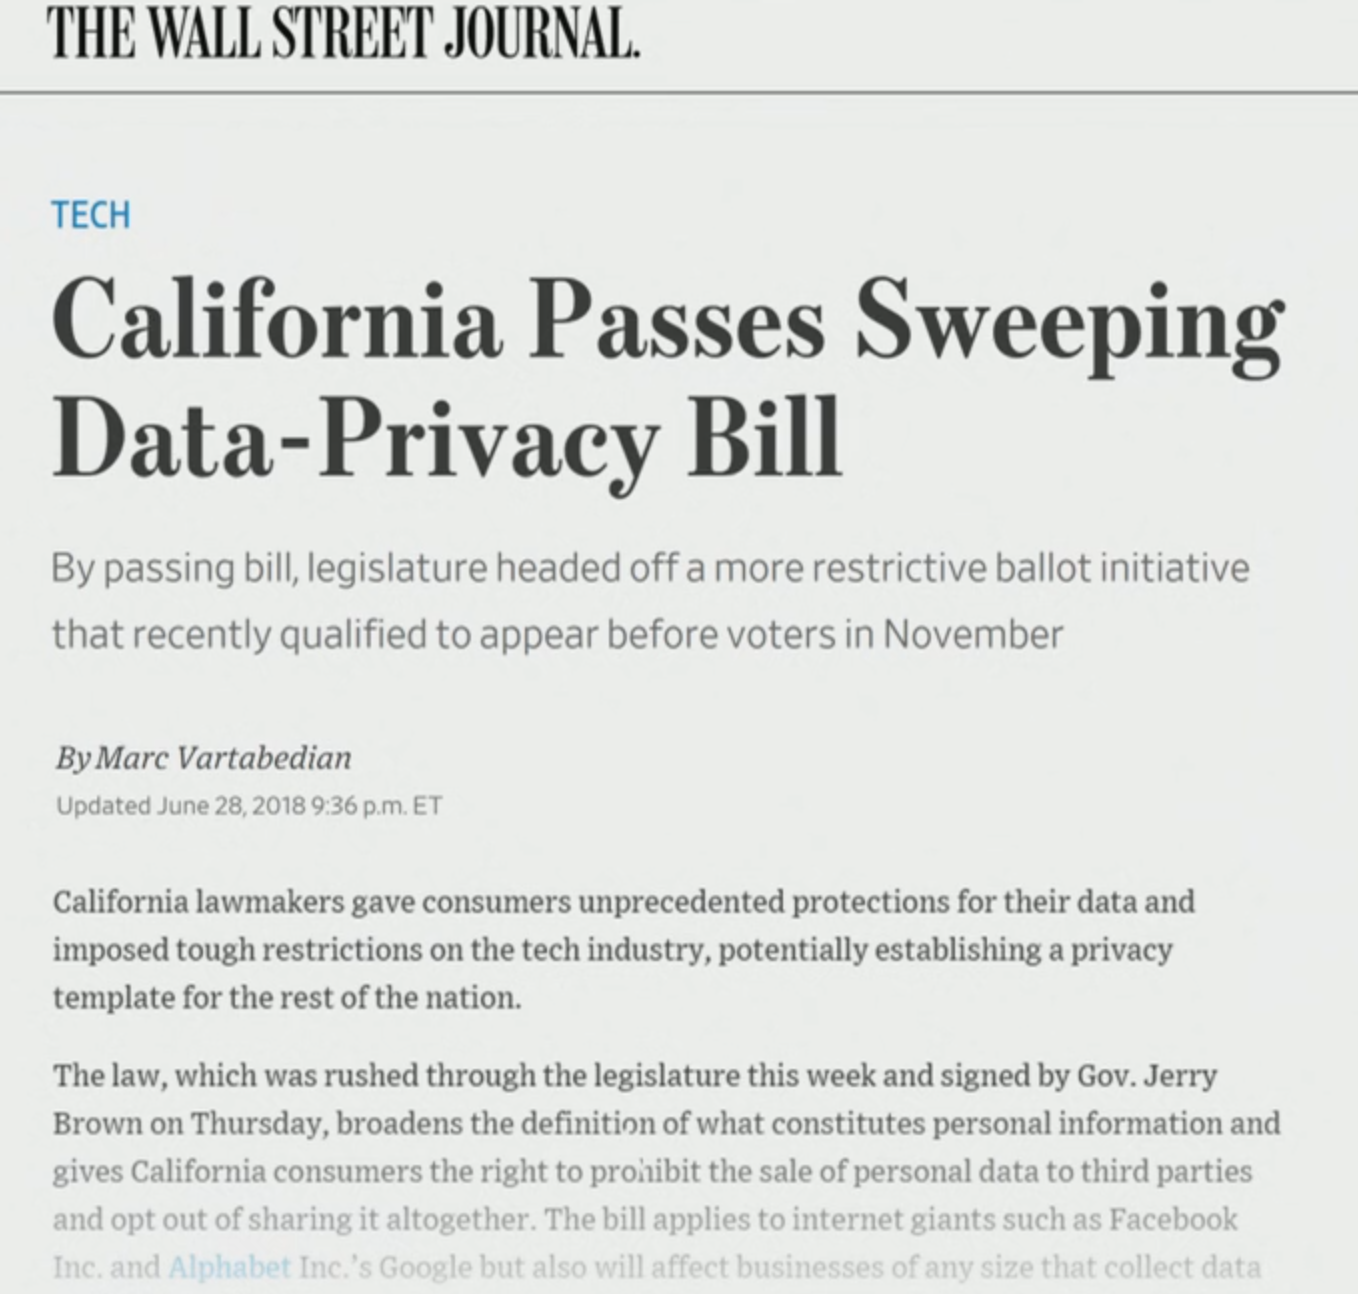 Wall Street Journal - California passes sweeping data privacy bill